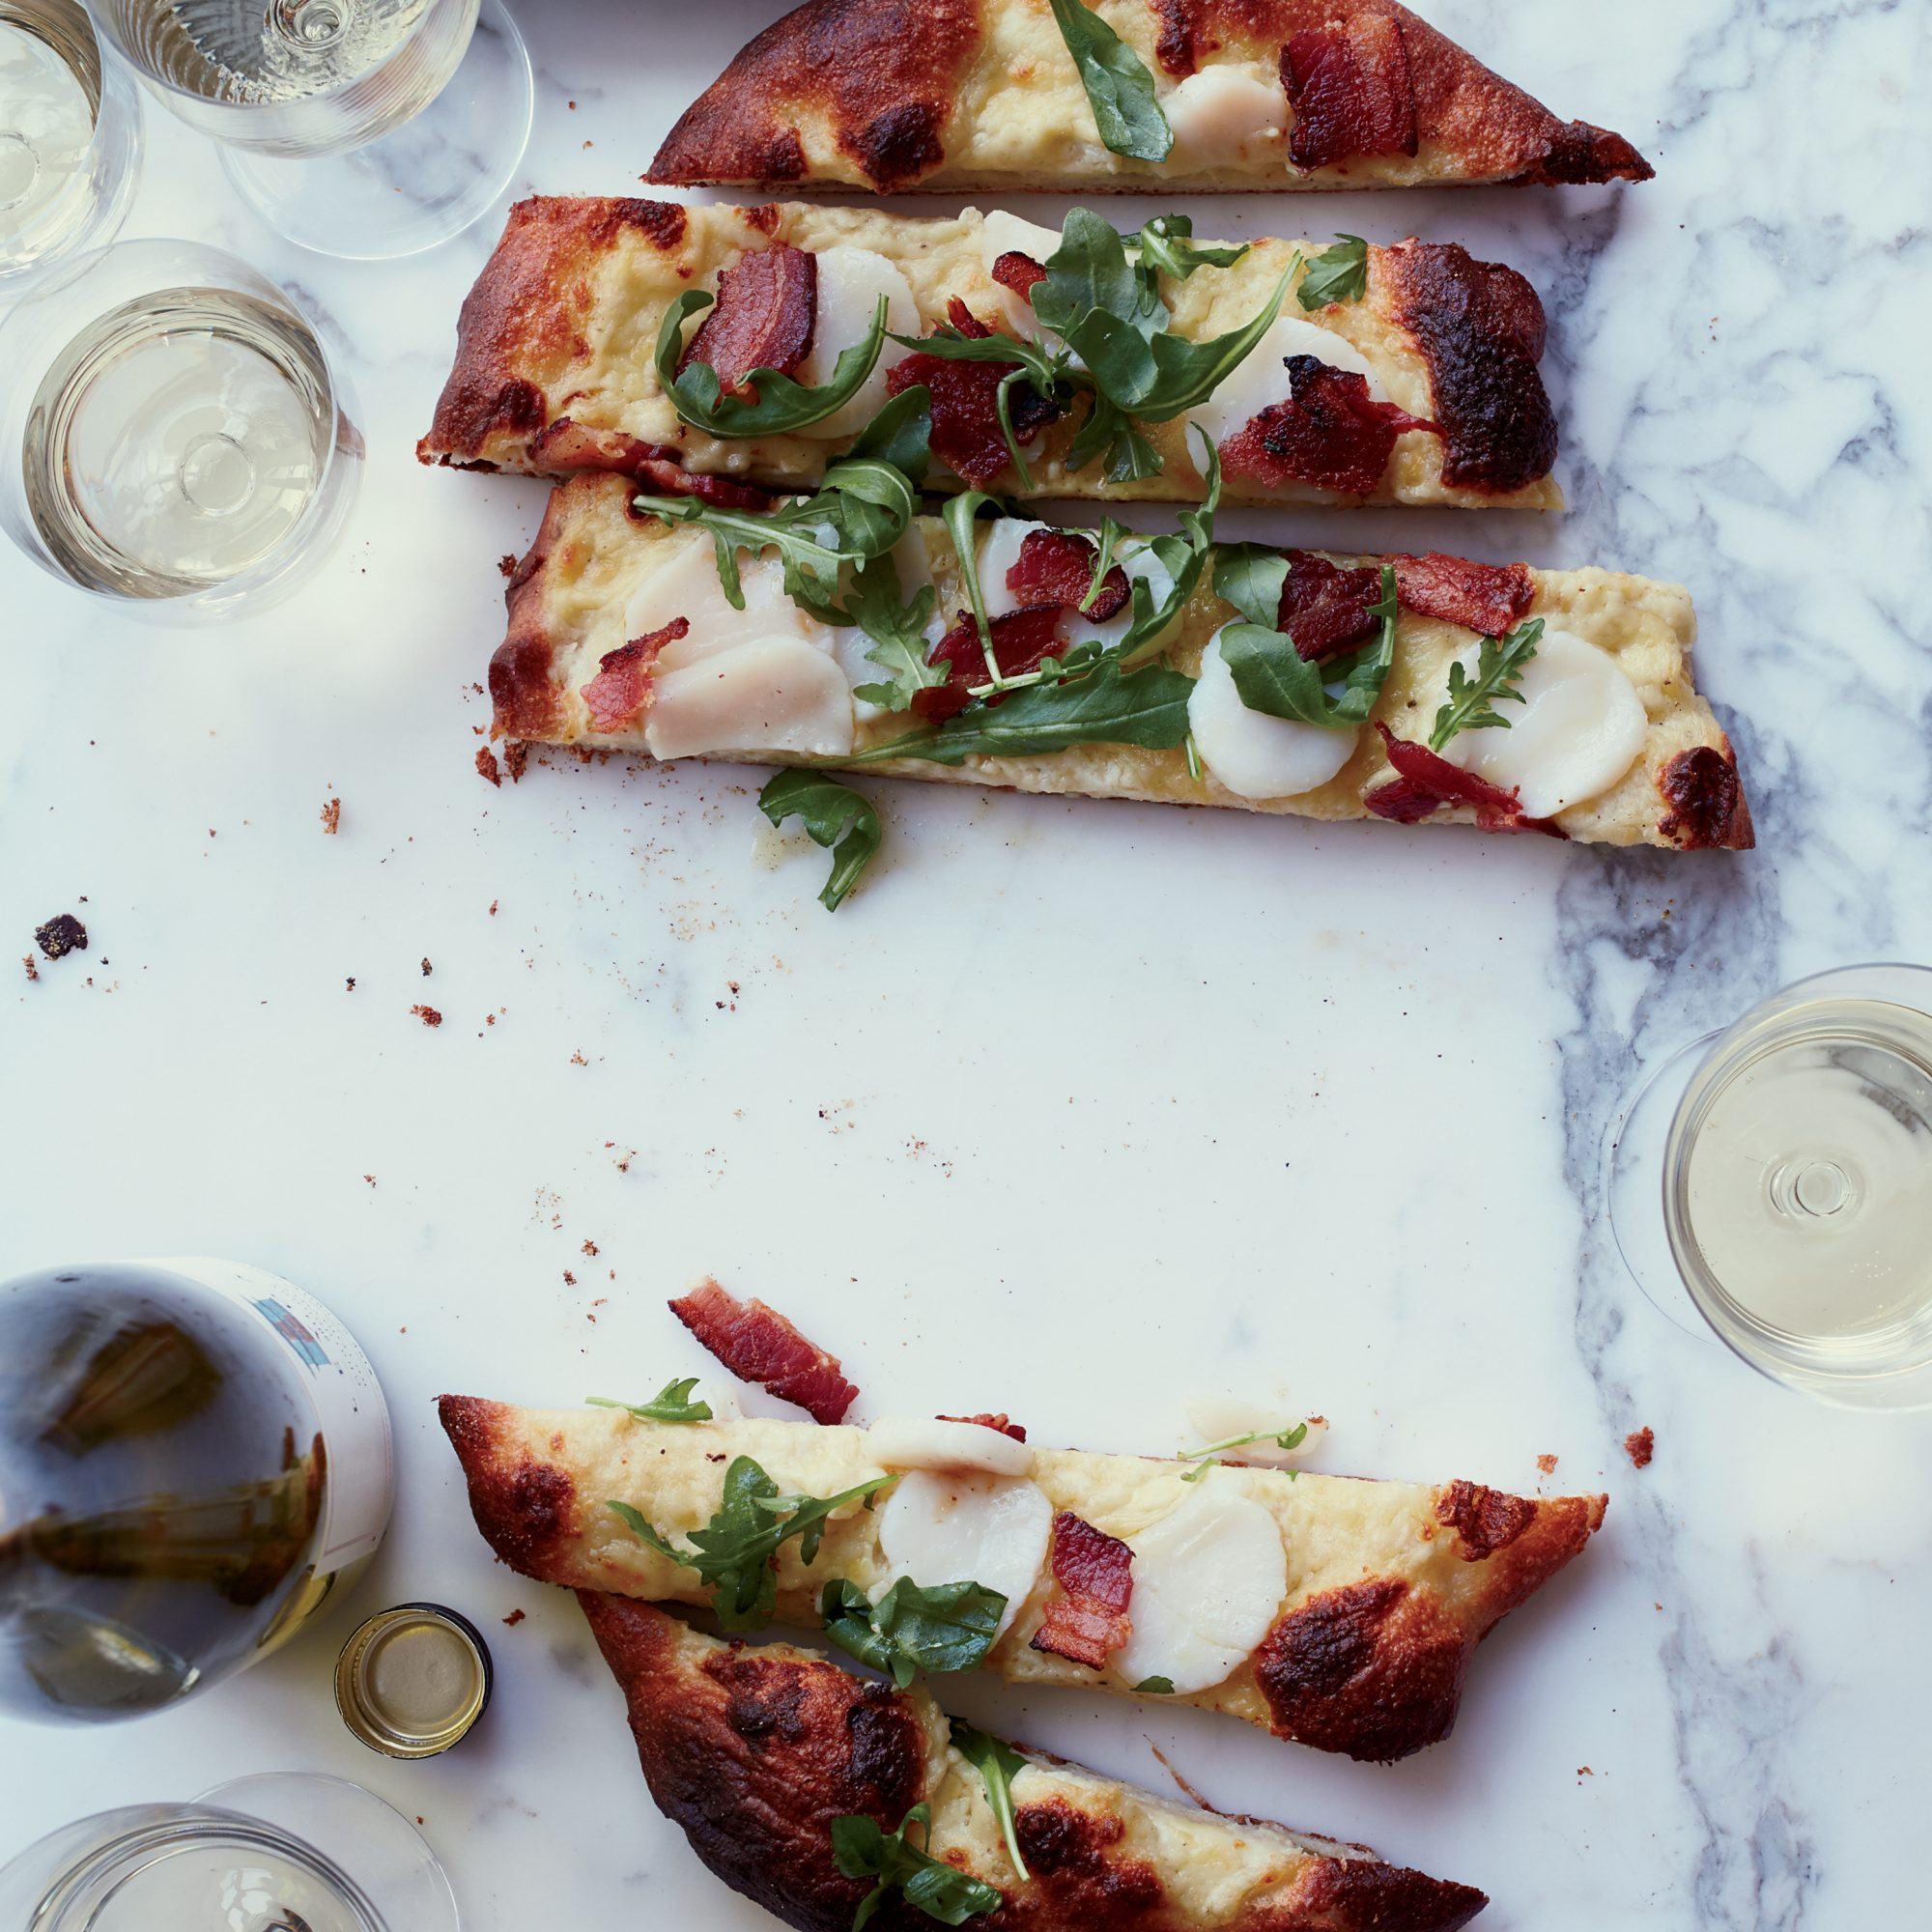 Scallop-and-Bacon Pizza